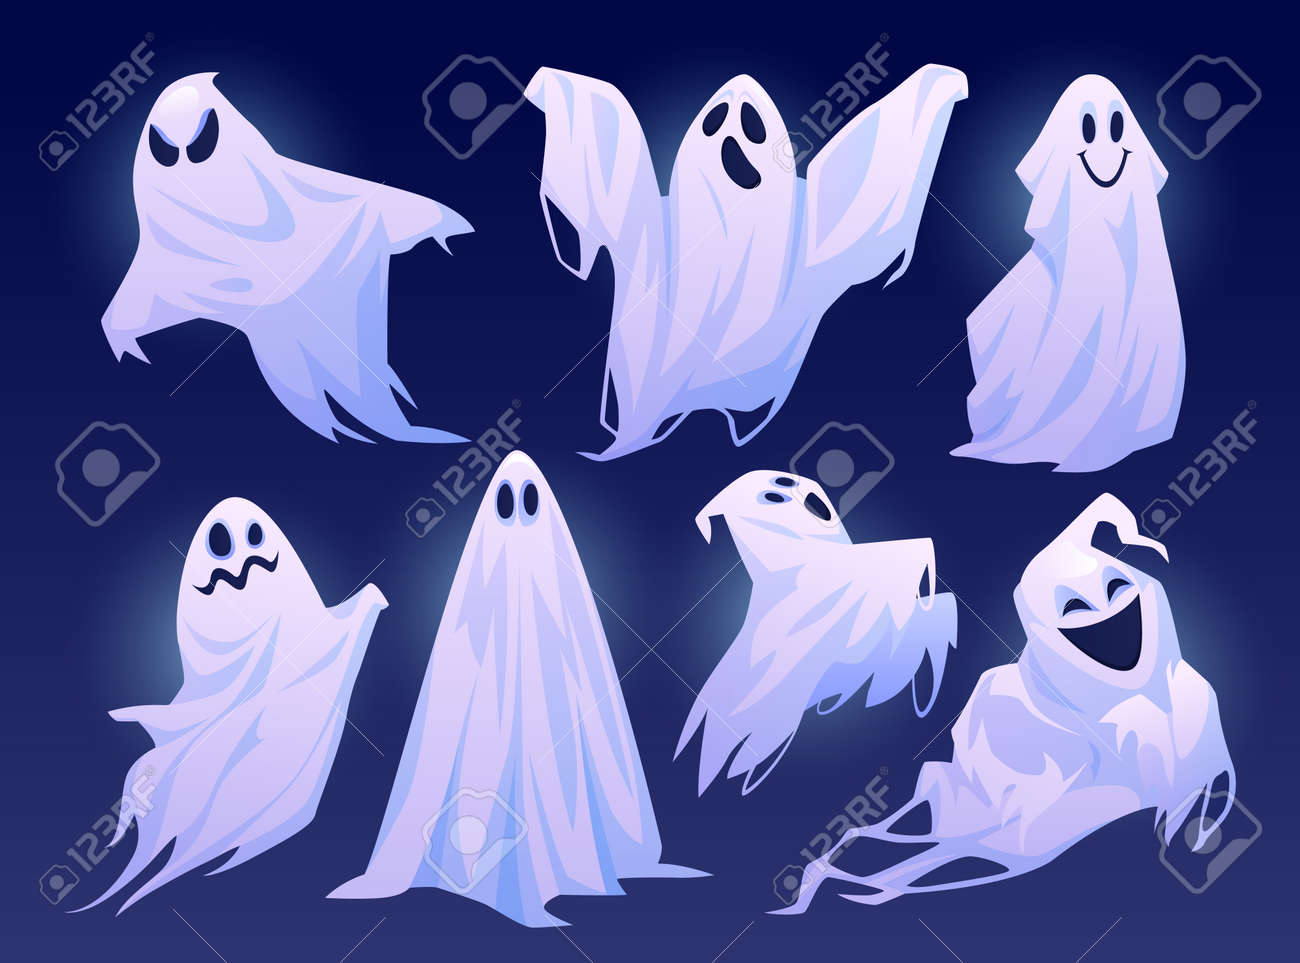 Good and evil ghosts of halloween, isolated set of personages in costumes. Floating apparitions with facial expression of sadness, joy and anger. Spooky monsters. Flat cartoon character vector - 171589790